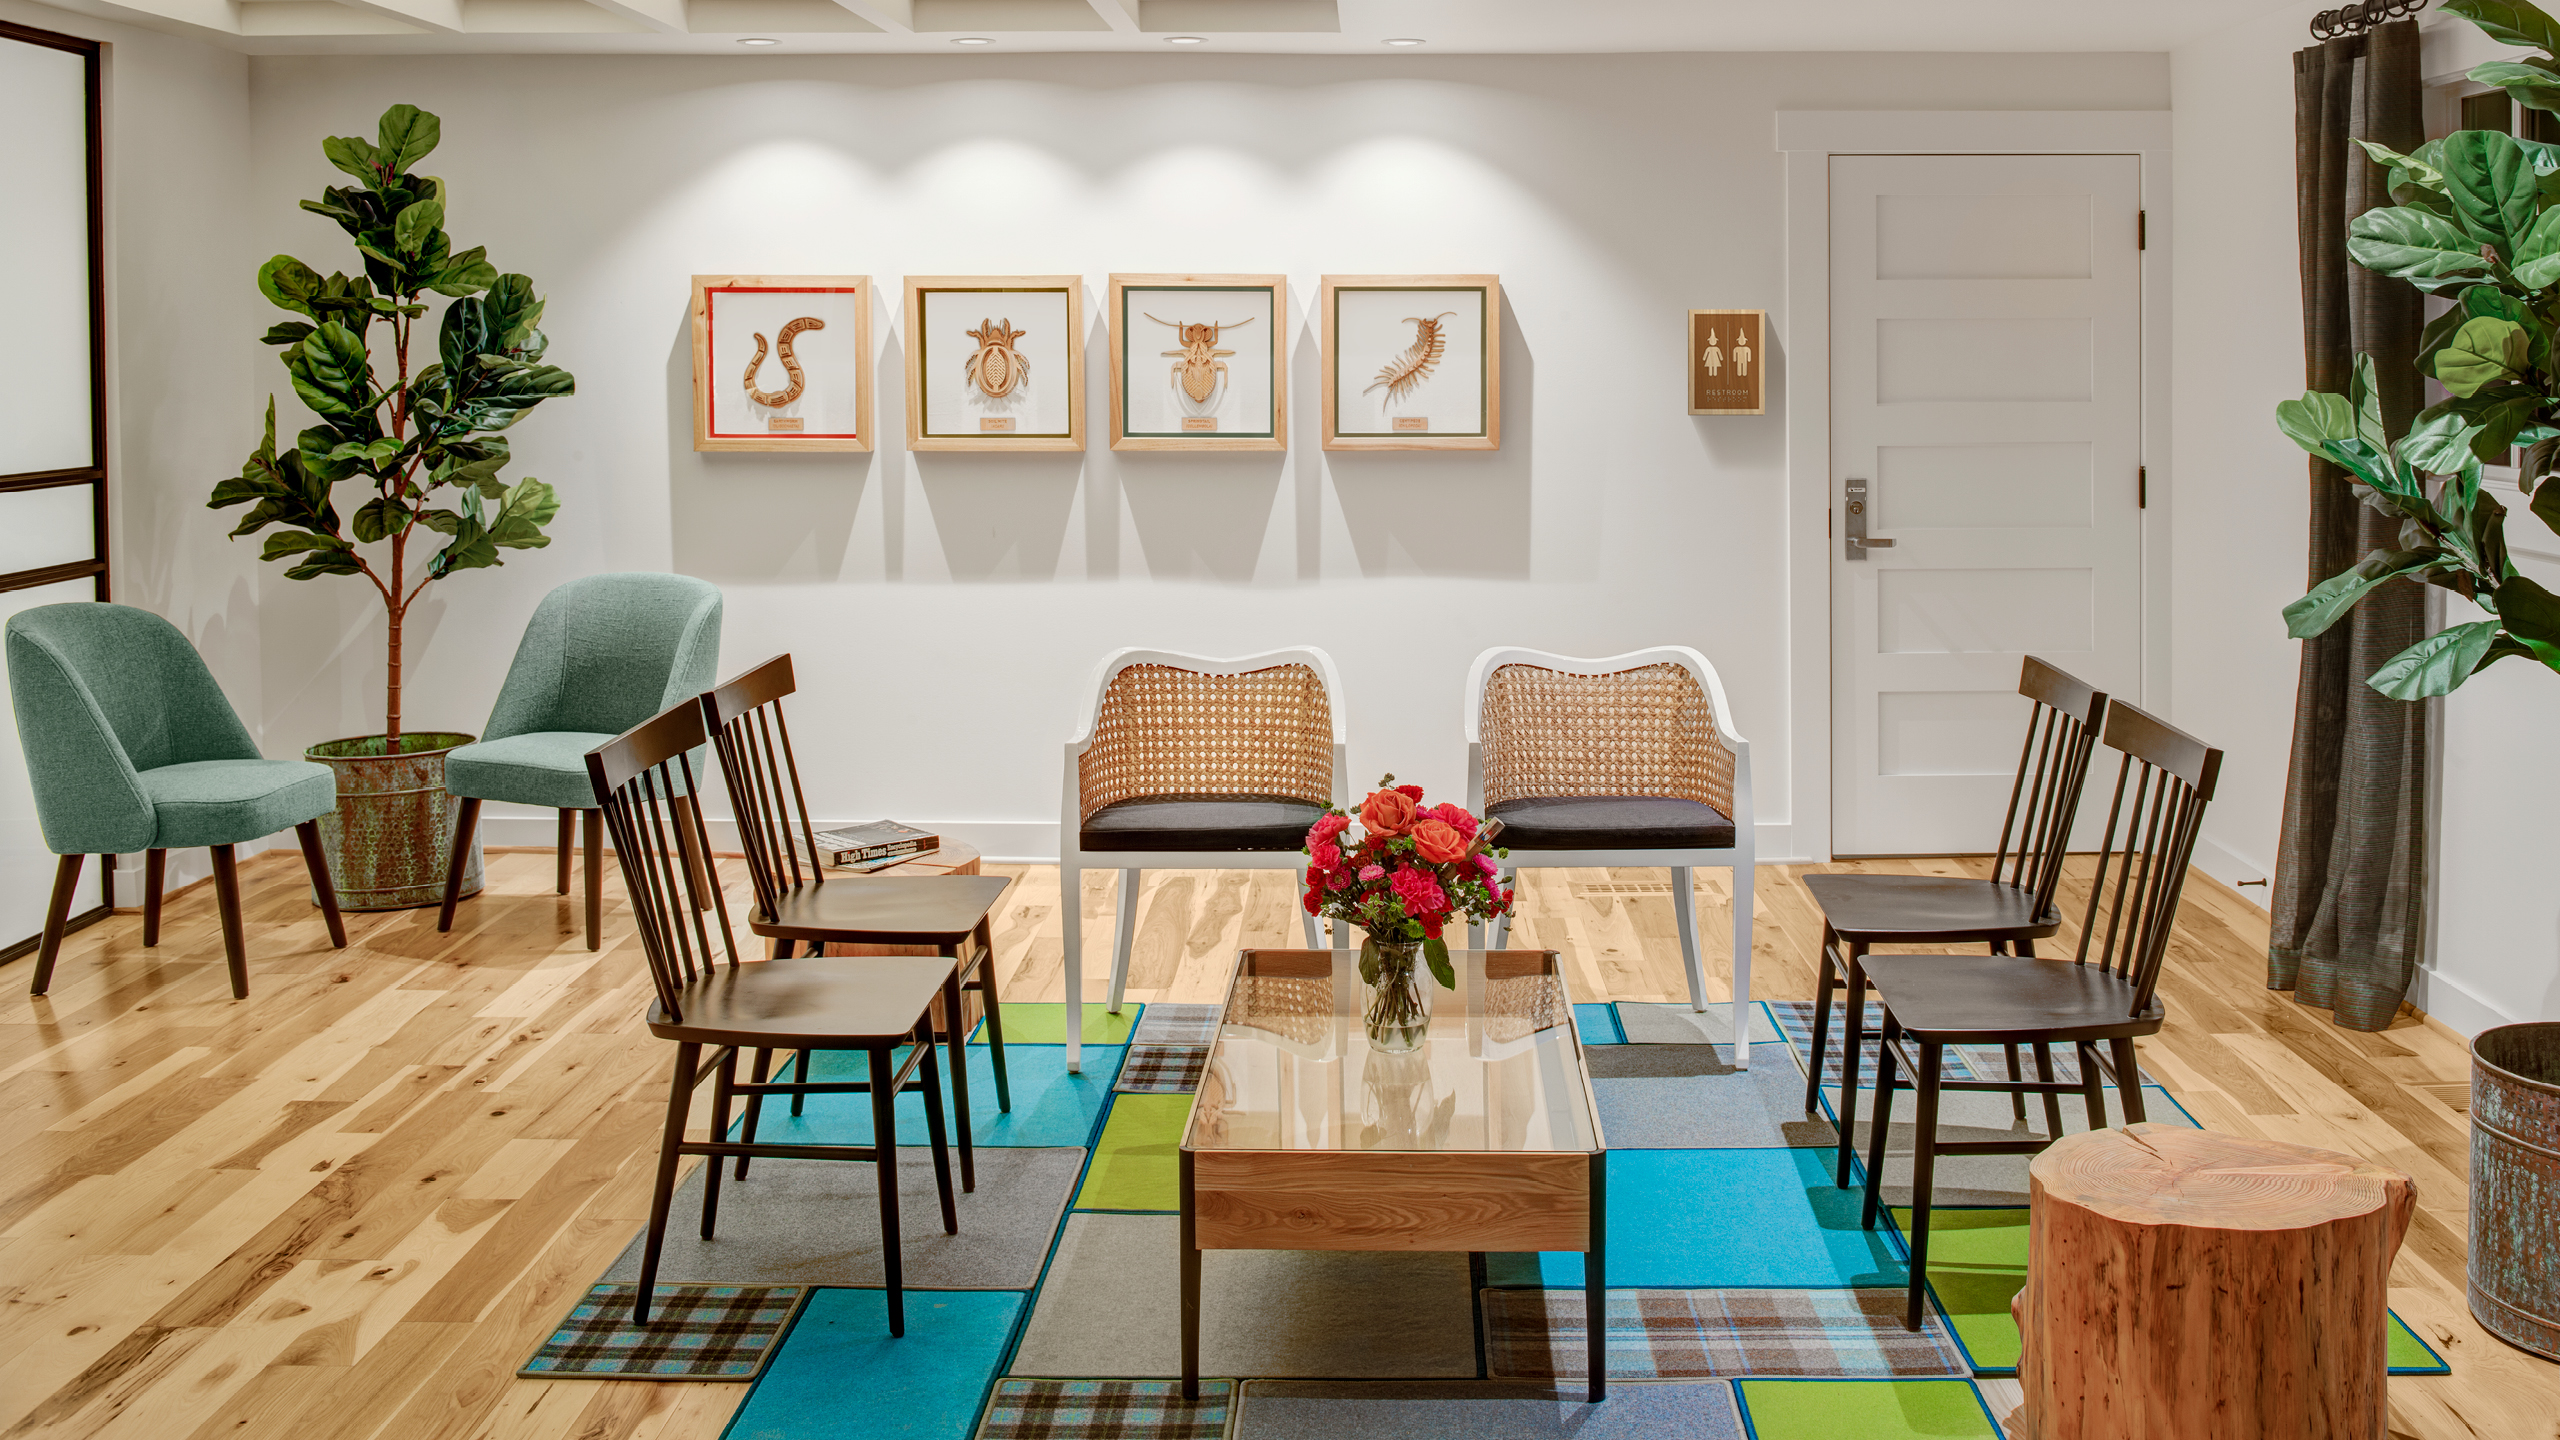 Roll out the welcome mat: 5 design tips for a VIP lobby & check-in experience